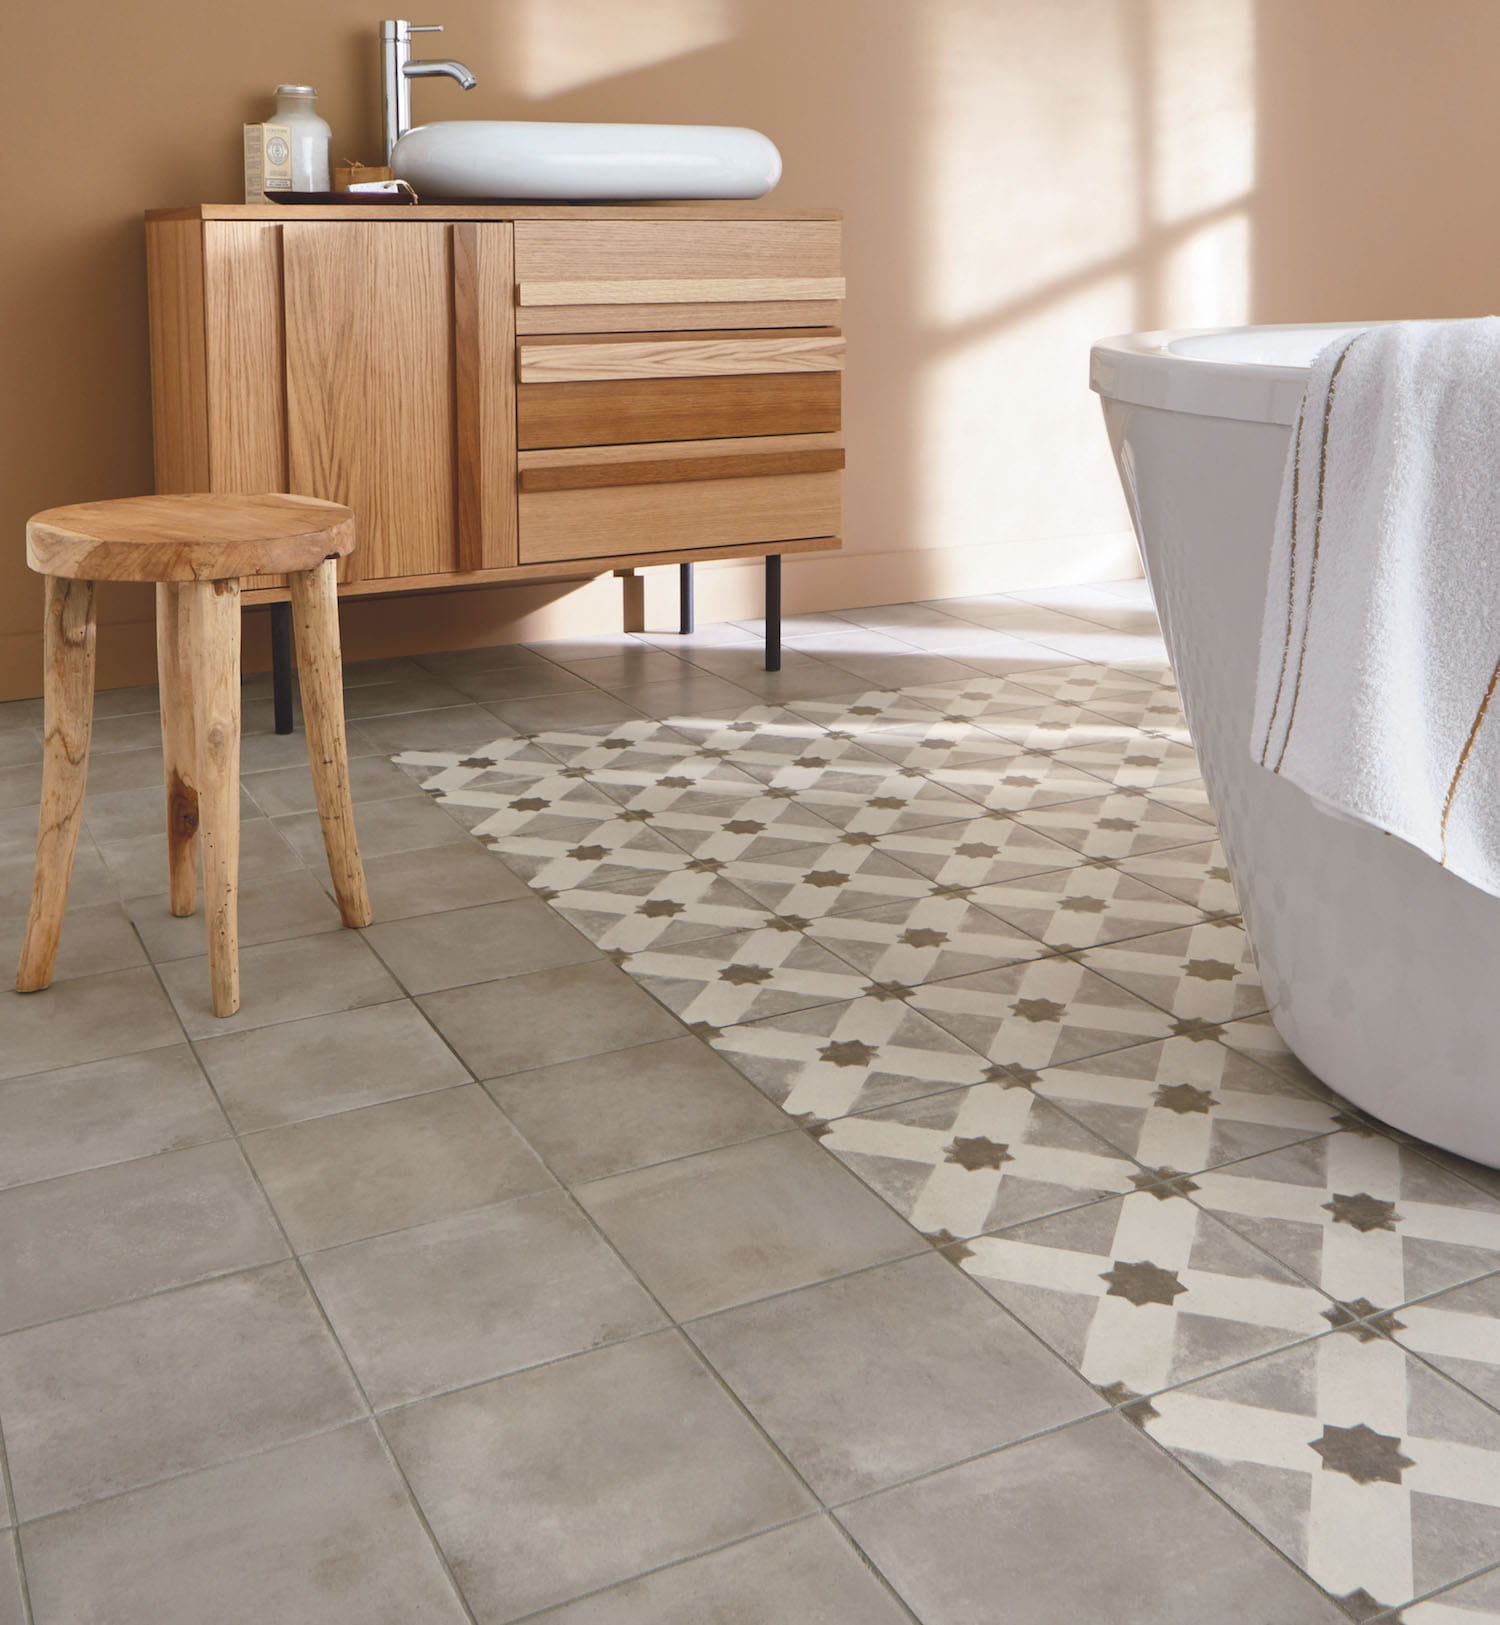 Le mix carrelage et carreaux de ciment for Carrelage grand carreaux gris